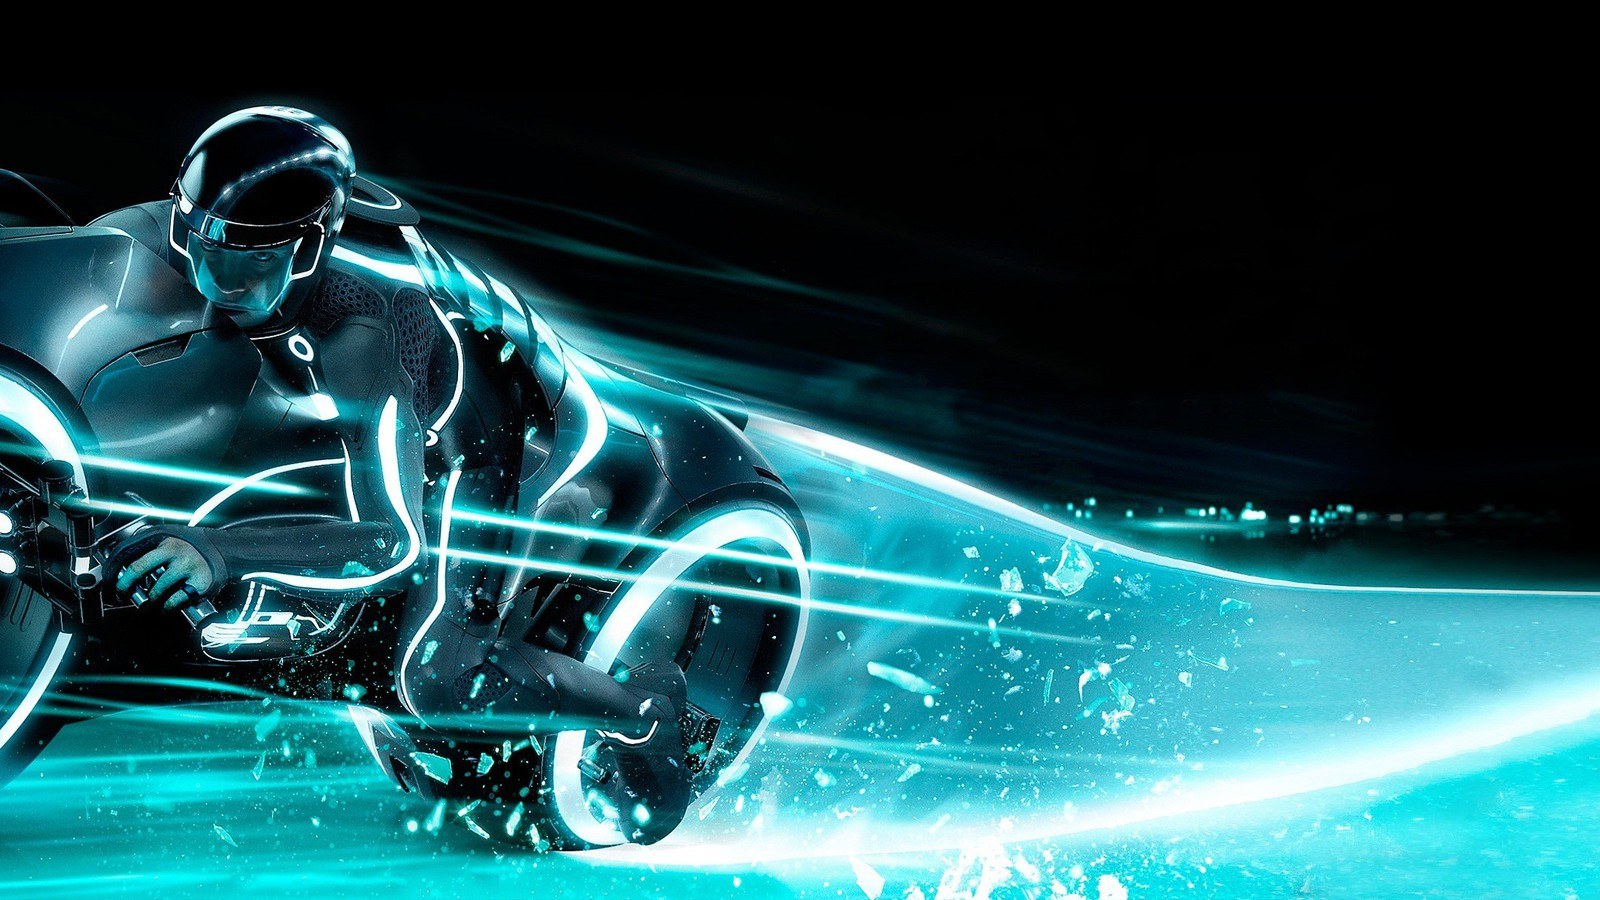 awesome tronlegacy wallpapers - photo #19